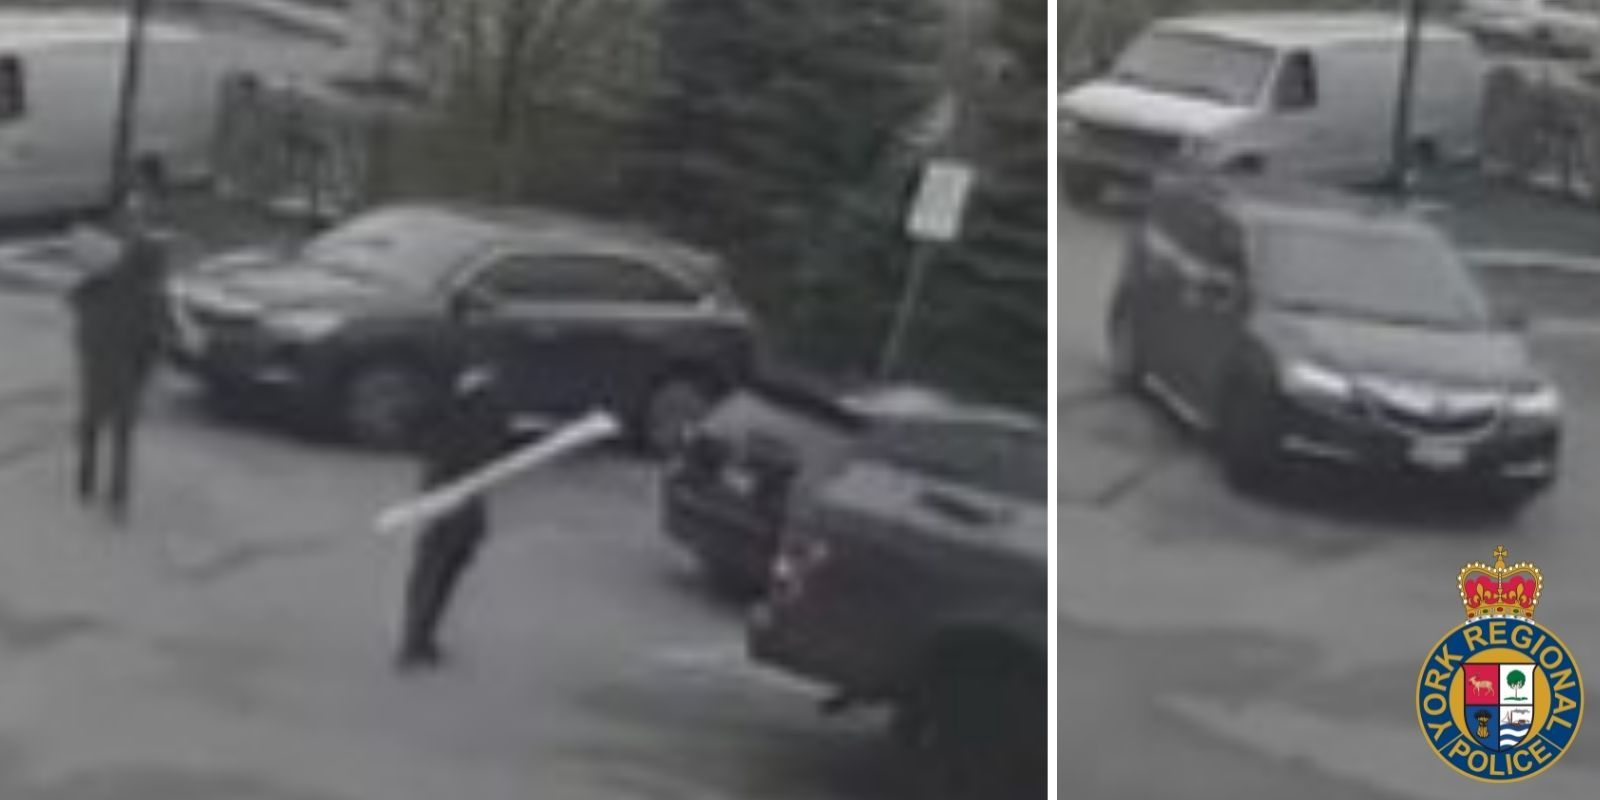 Suspects sought after incidents in Ontario that 'may' be anti-Semitic: York Police